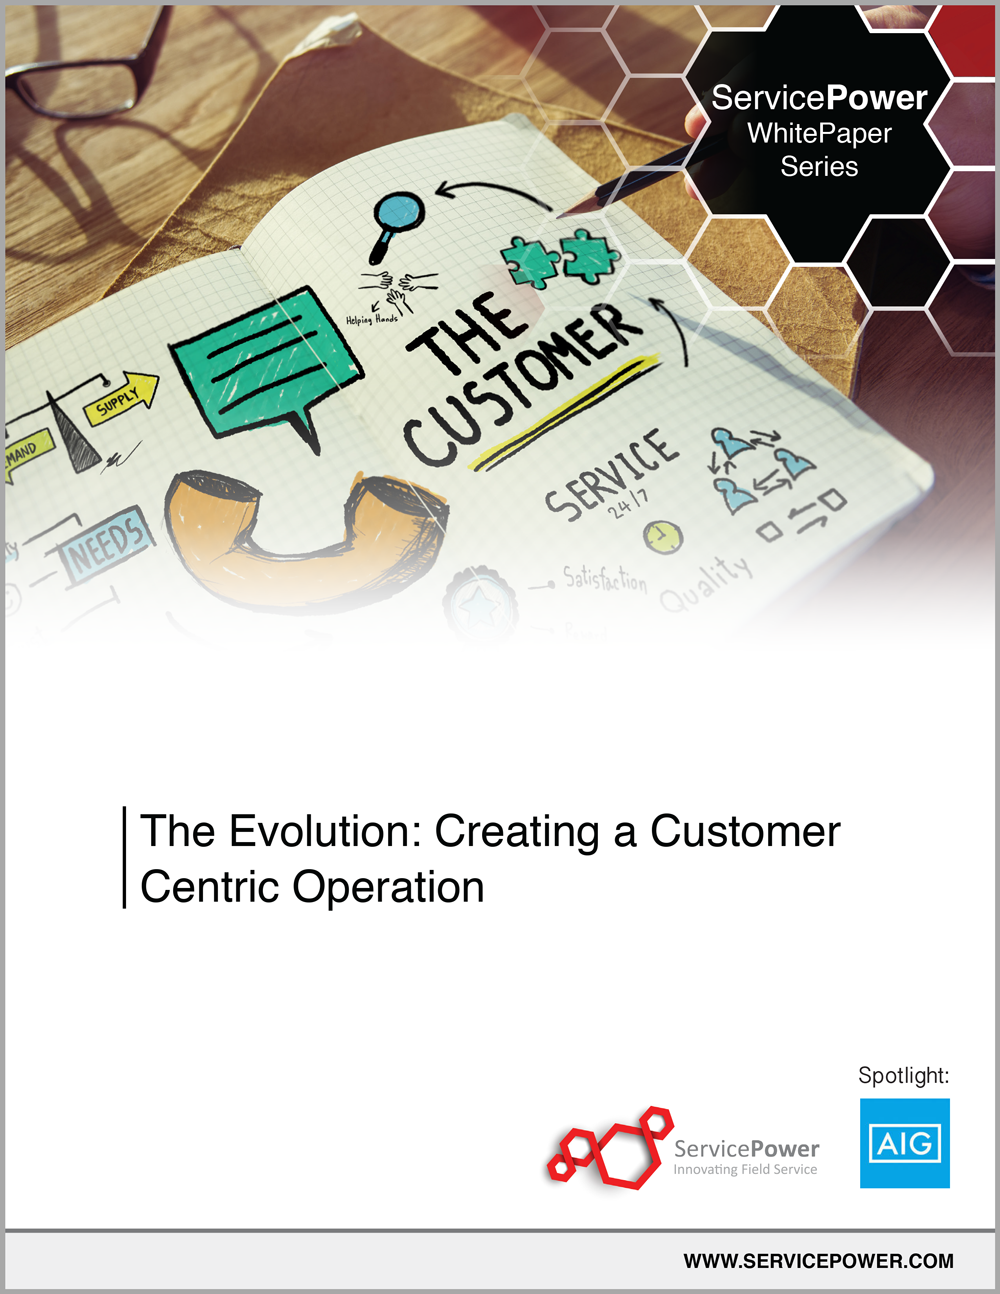 Free Whitepaper - The Evolution: Creating a Customer-Centric Operation